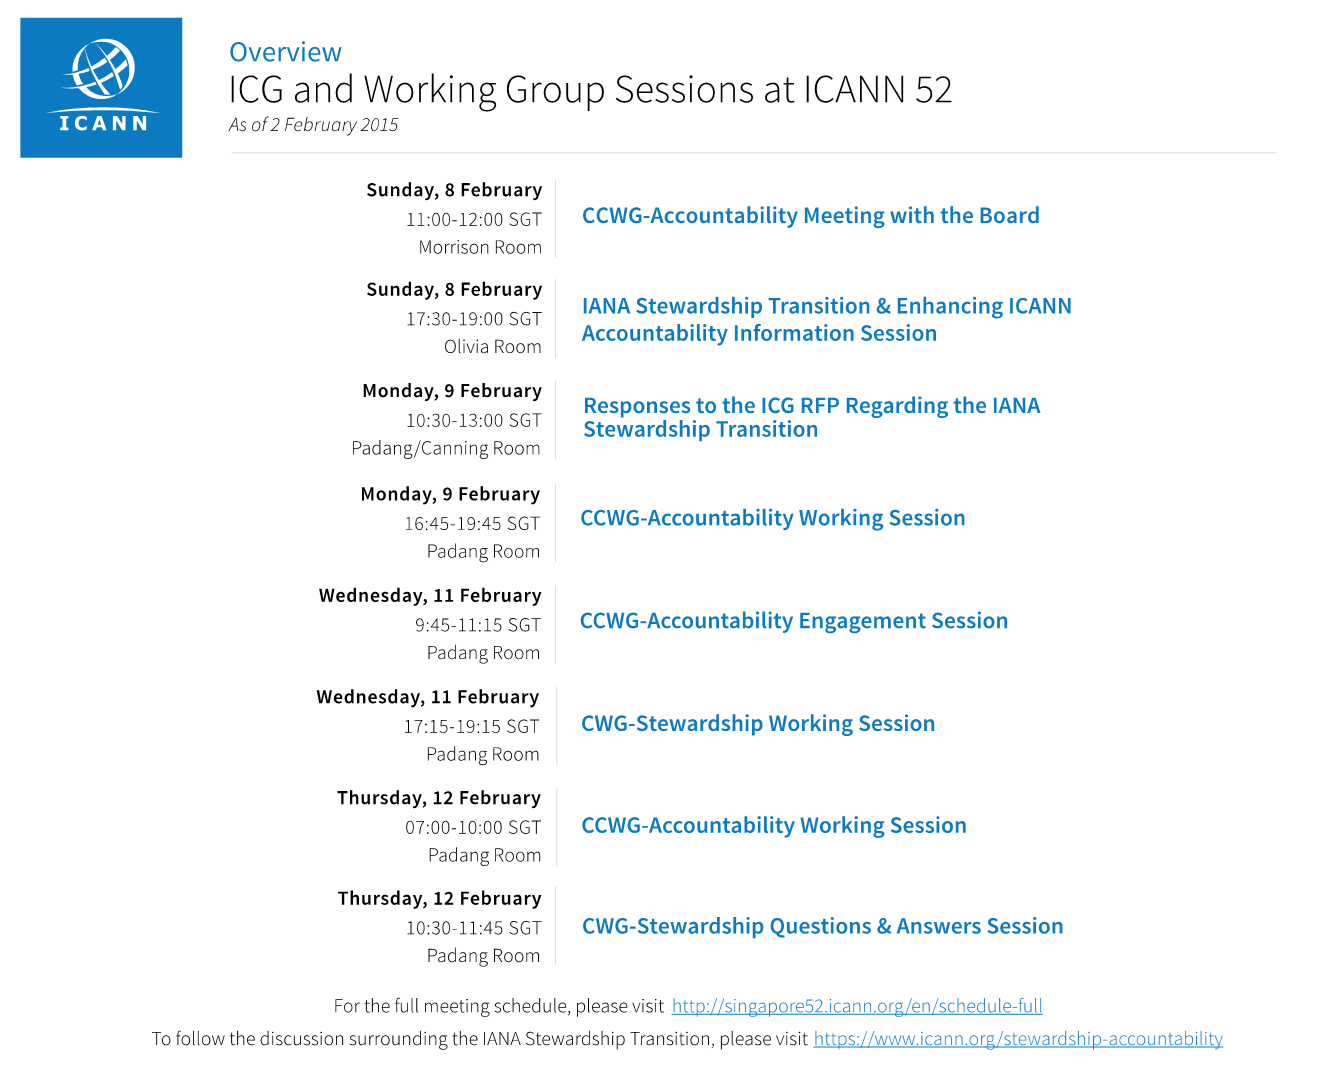 Overview: ICG and Working Group Sessions at ICANN 52 - As of 2 February 2015